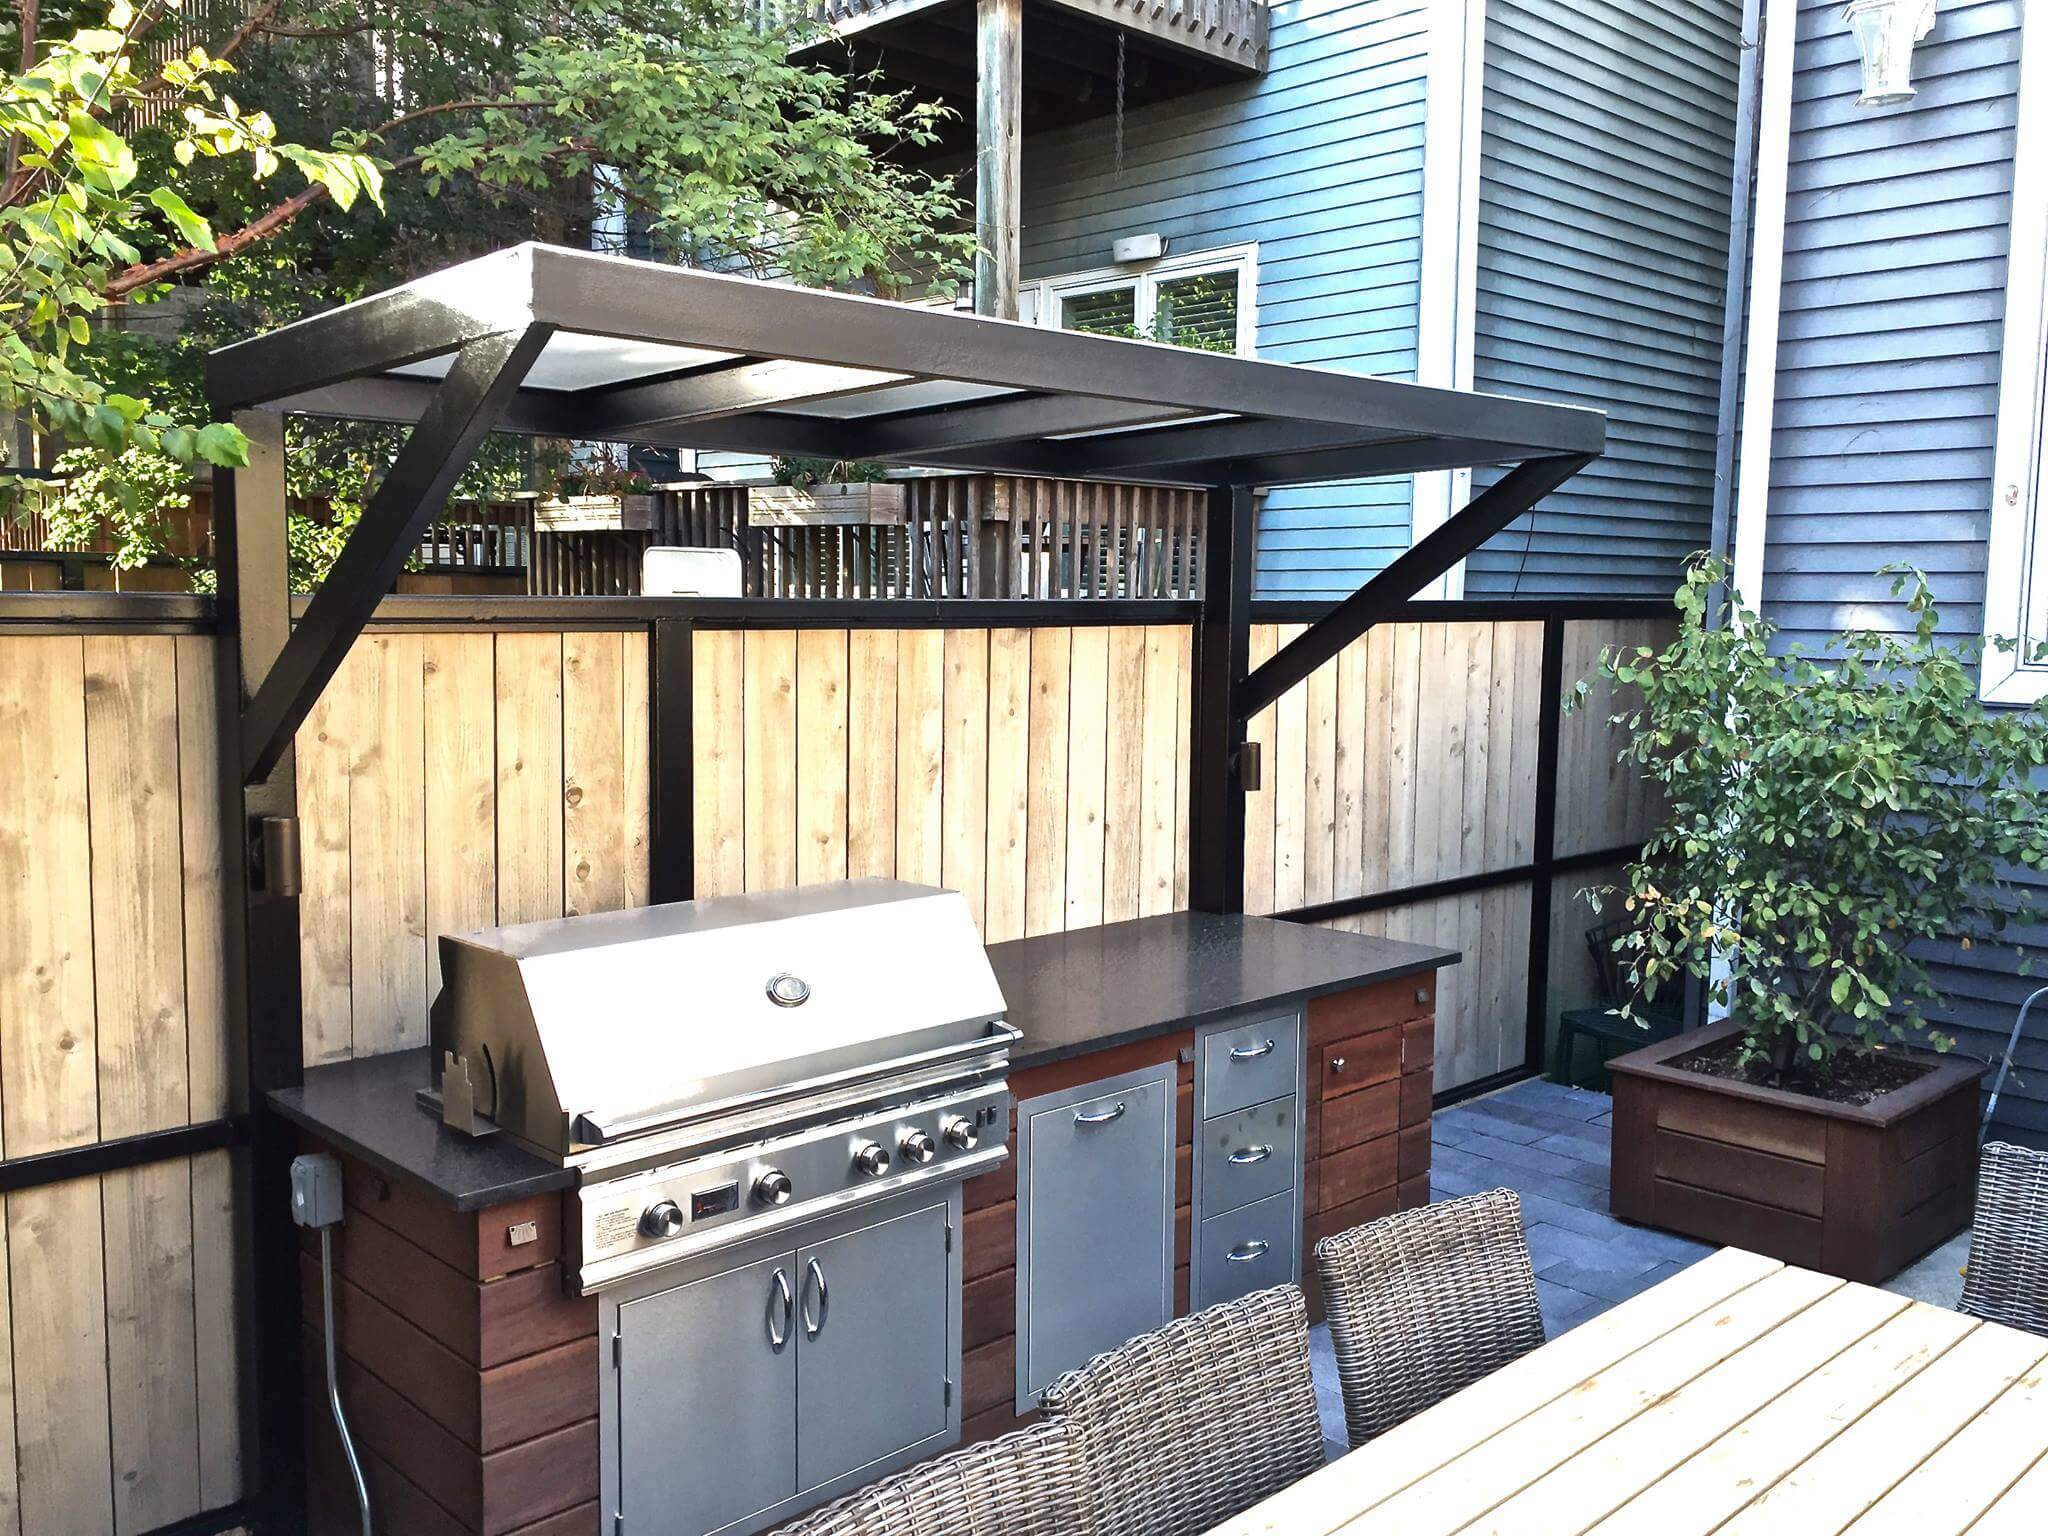 Backyard Grill Chicago unique backyard grill chicago